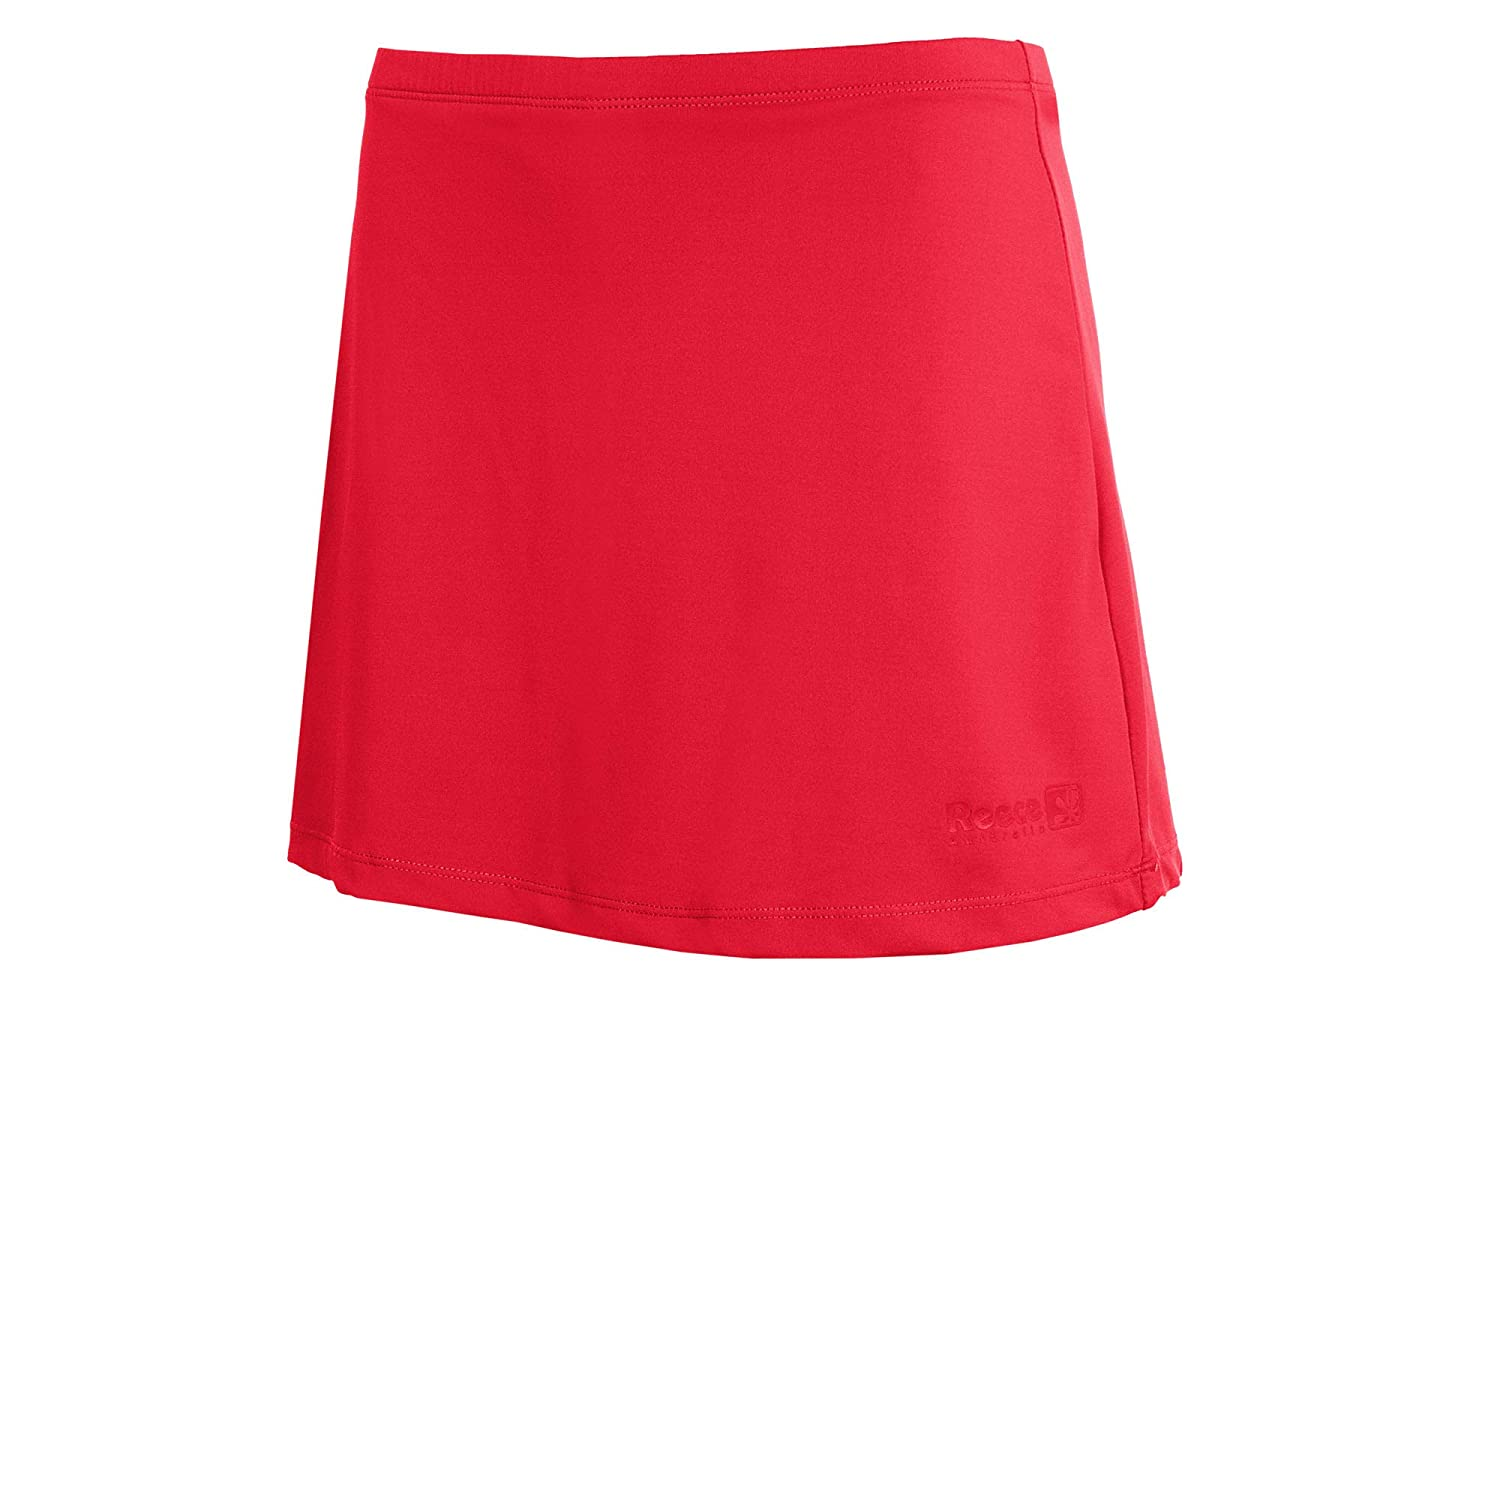 Reece FunDamental Skort Damen, Größe:116, Farbe:Bright Red